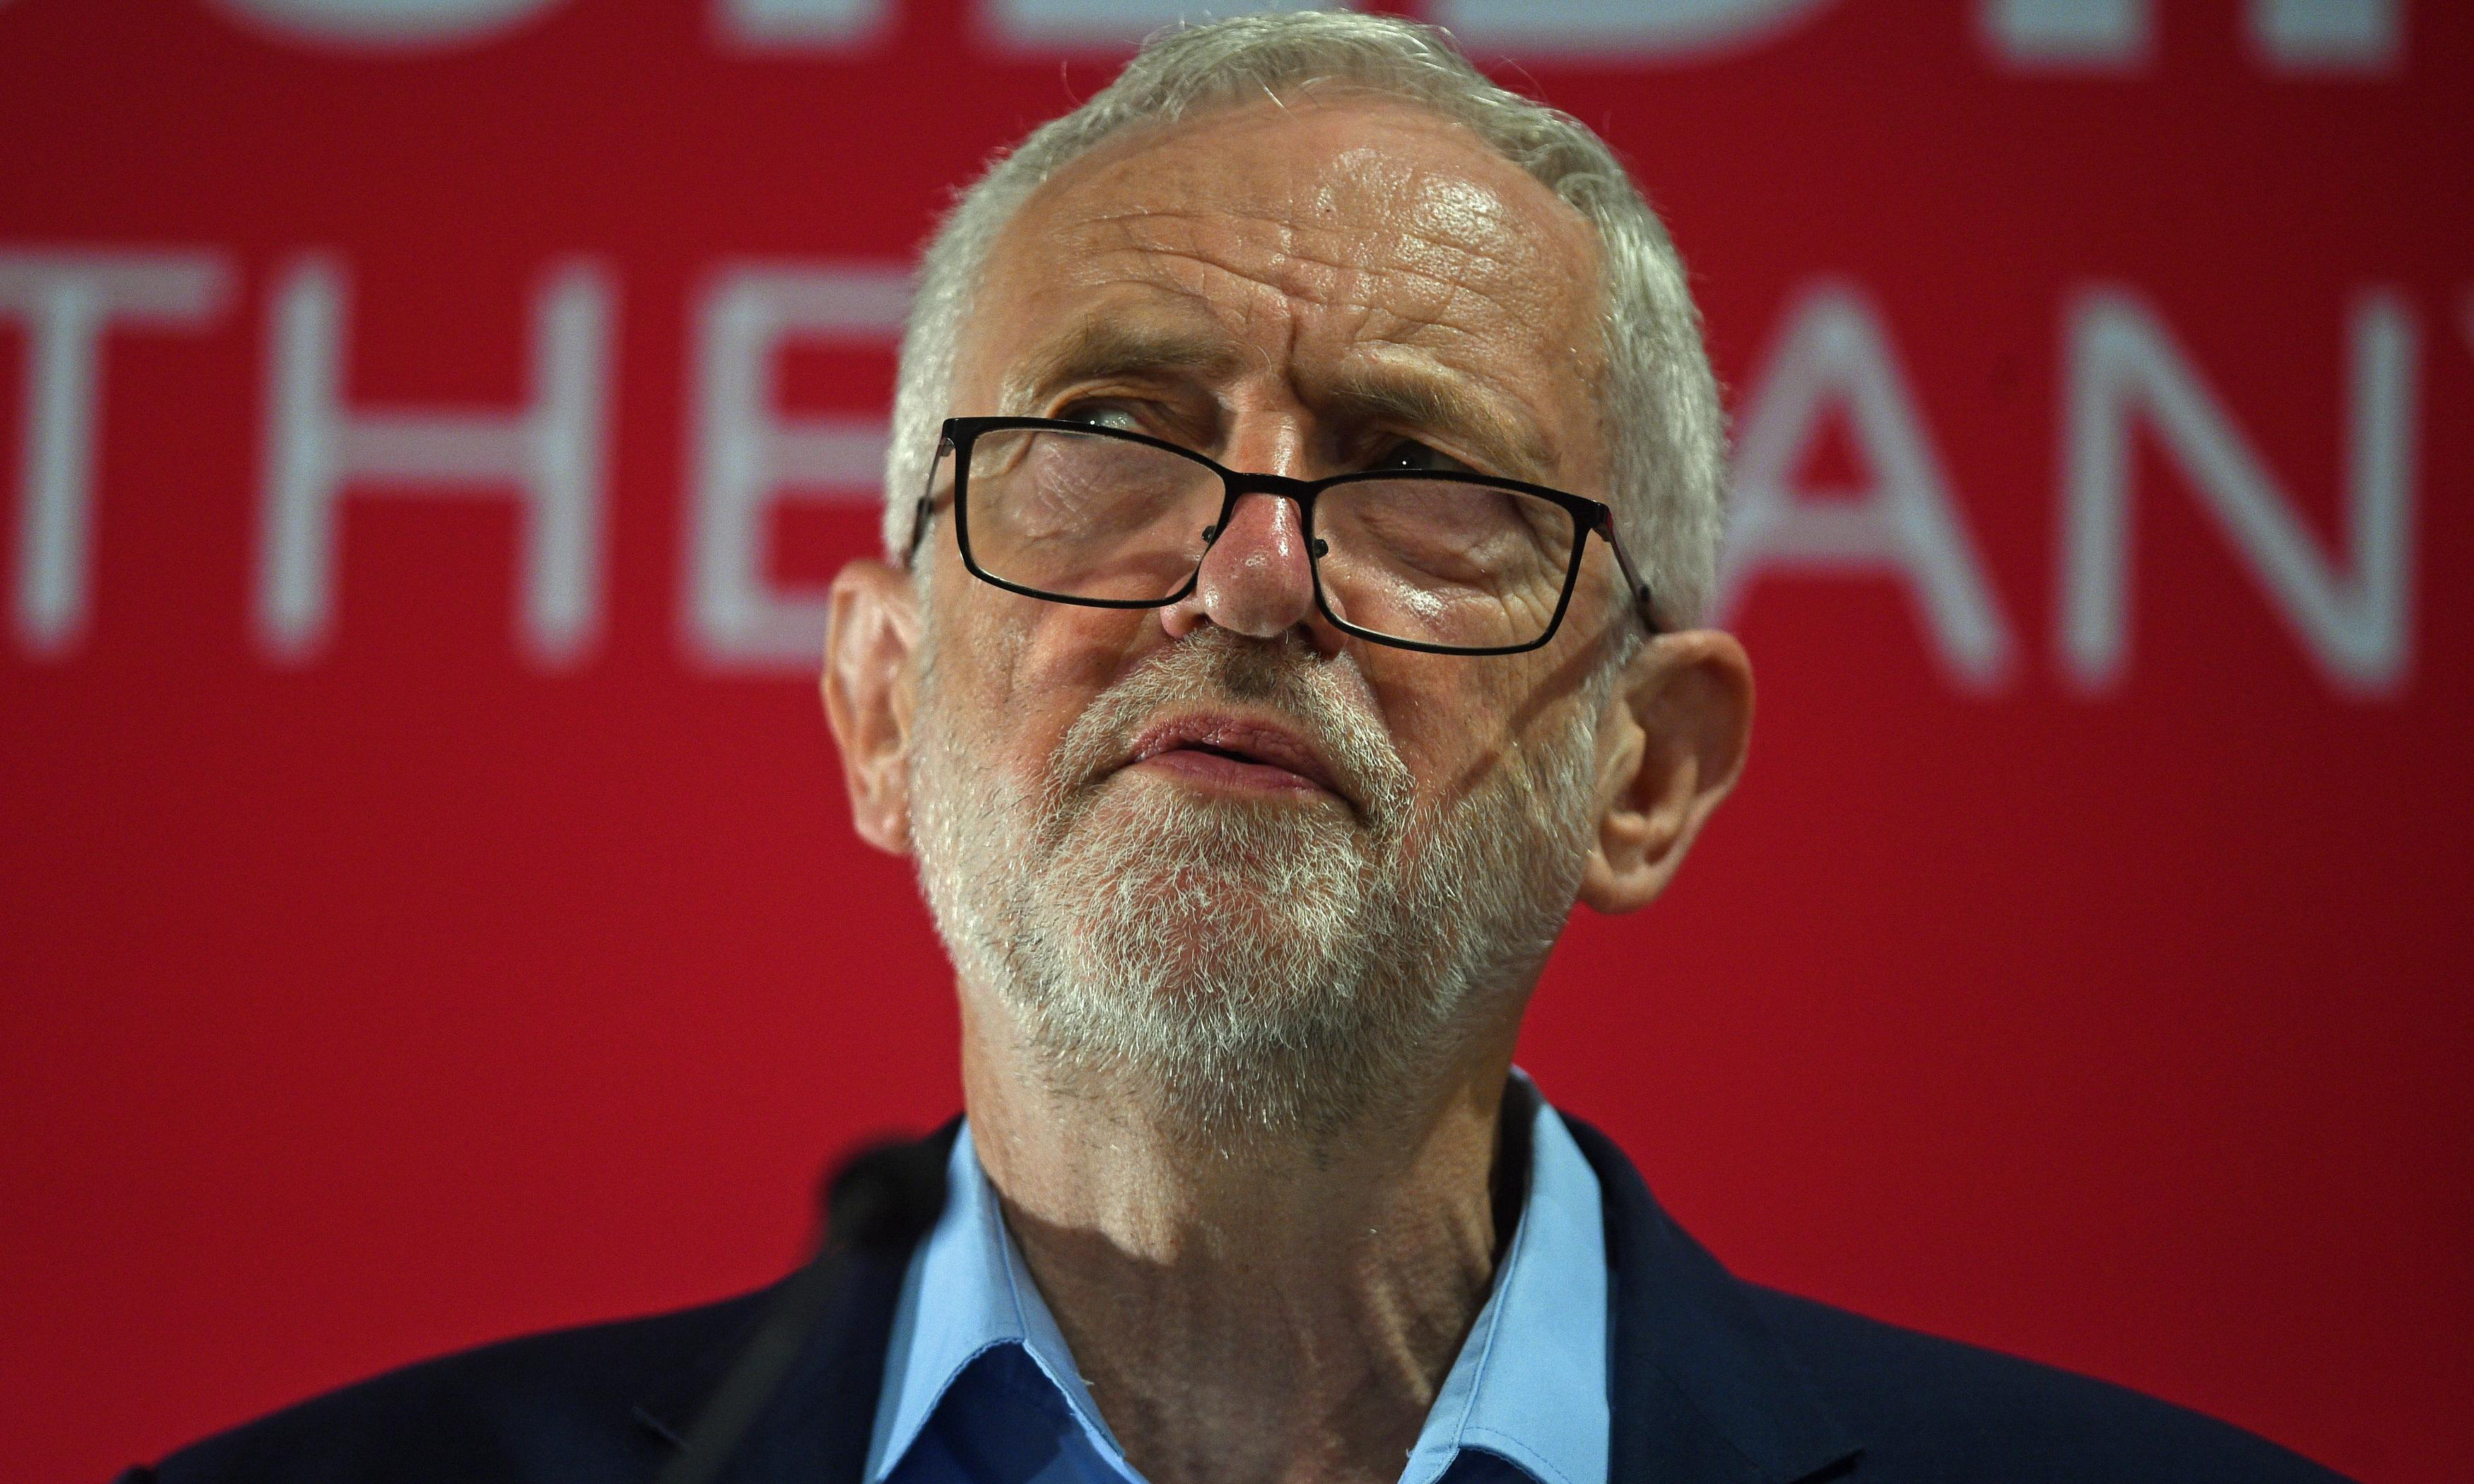 Corbyn under fire from staff and Labour peers over antisemitism